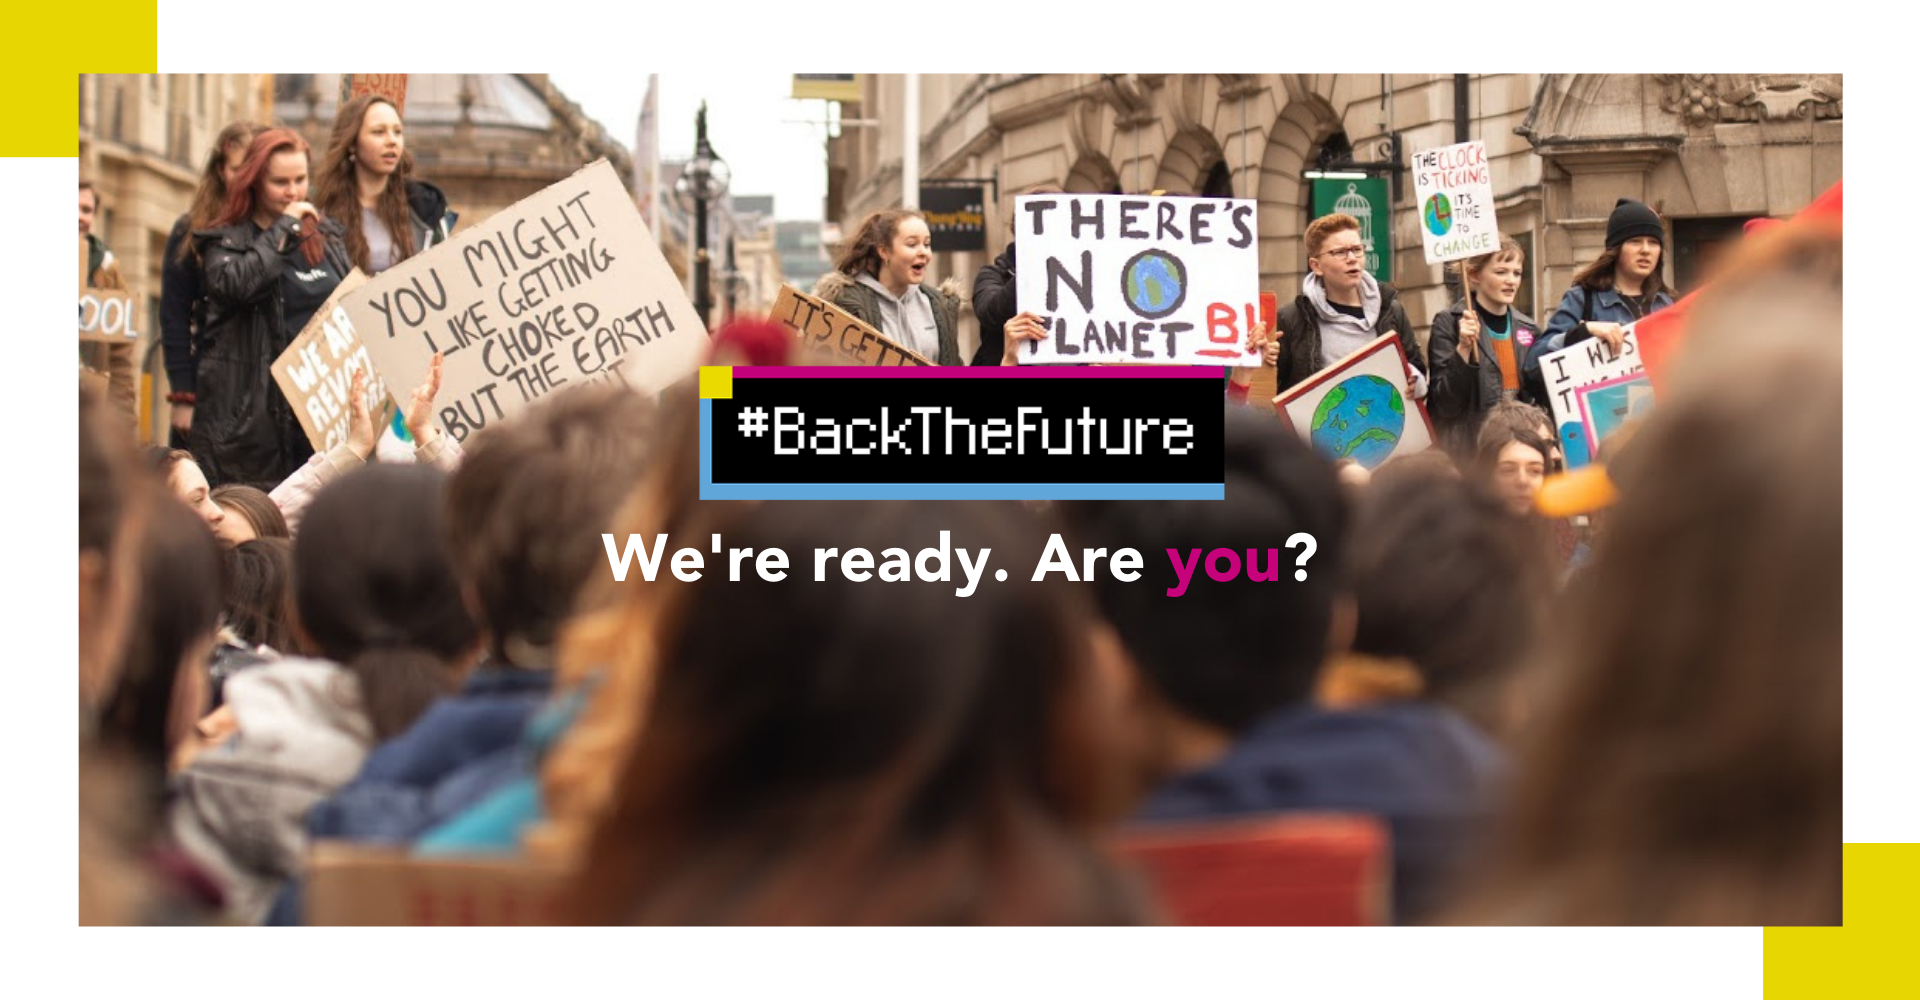 We're ready to #BackTheFuture. Are you?